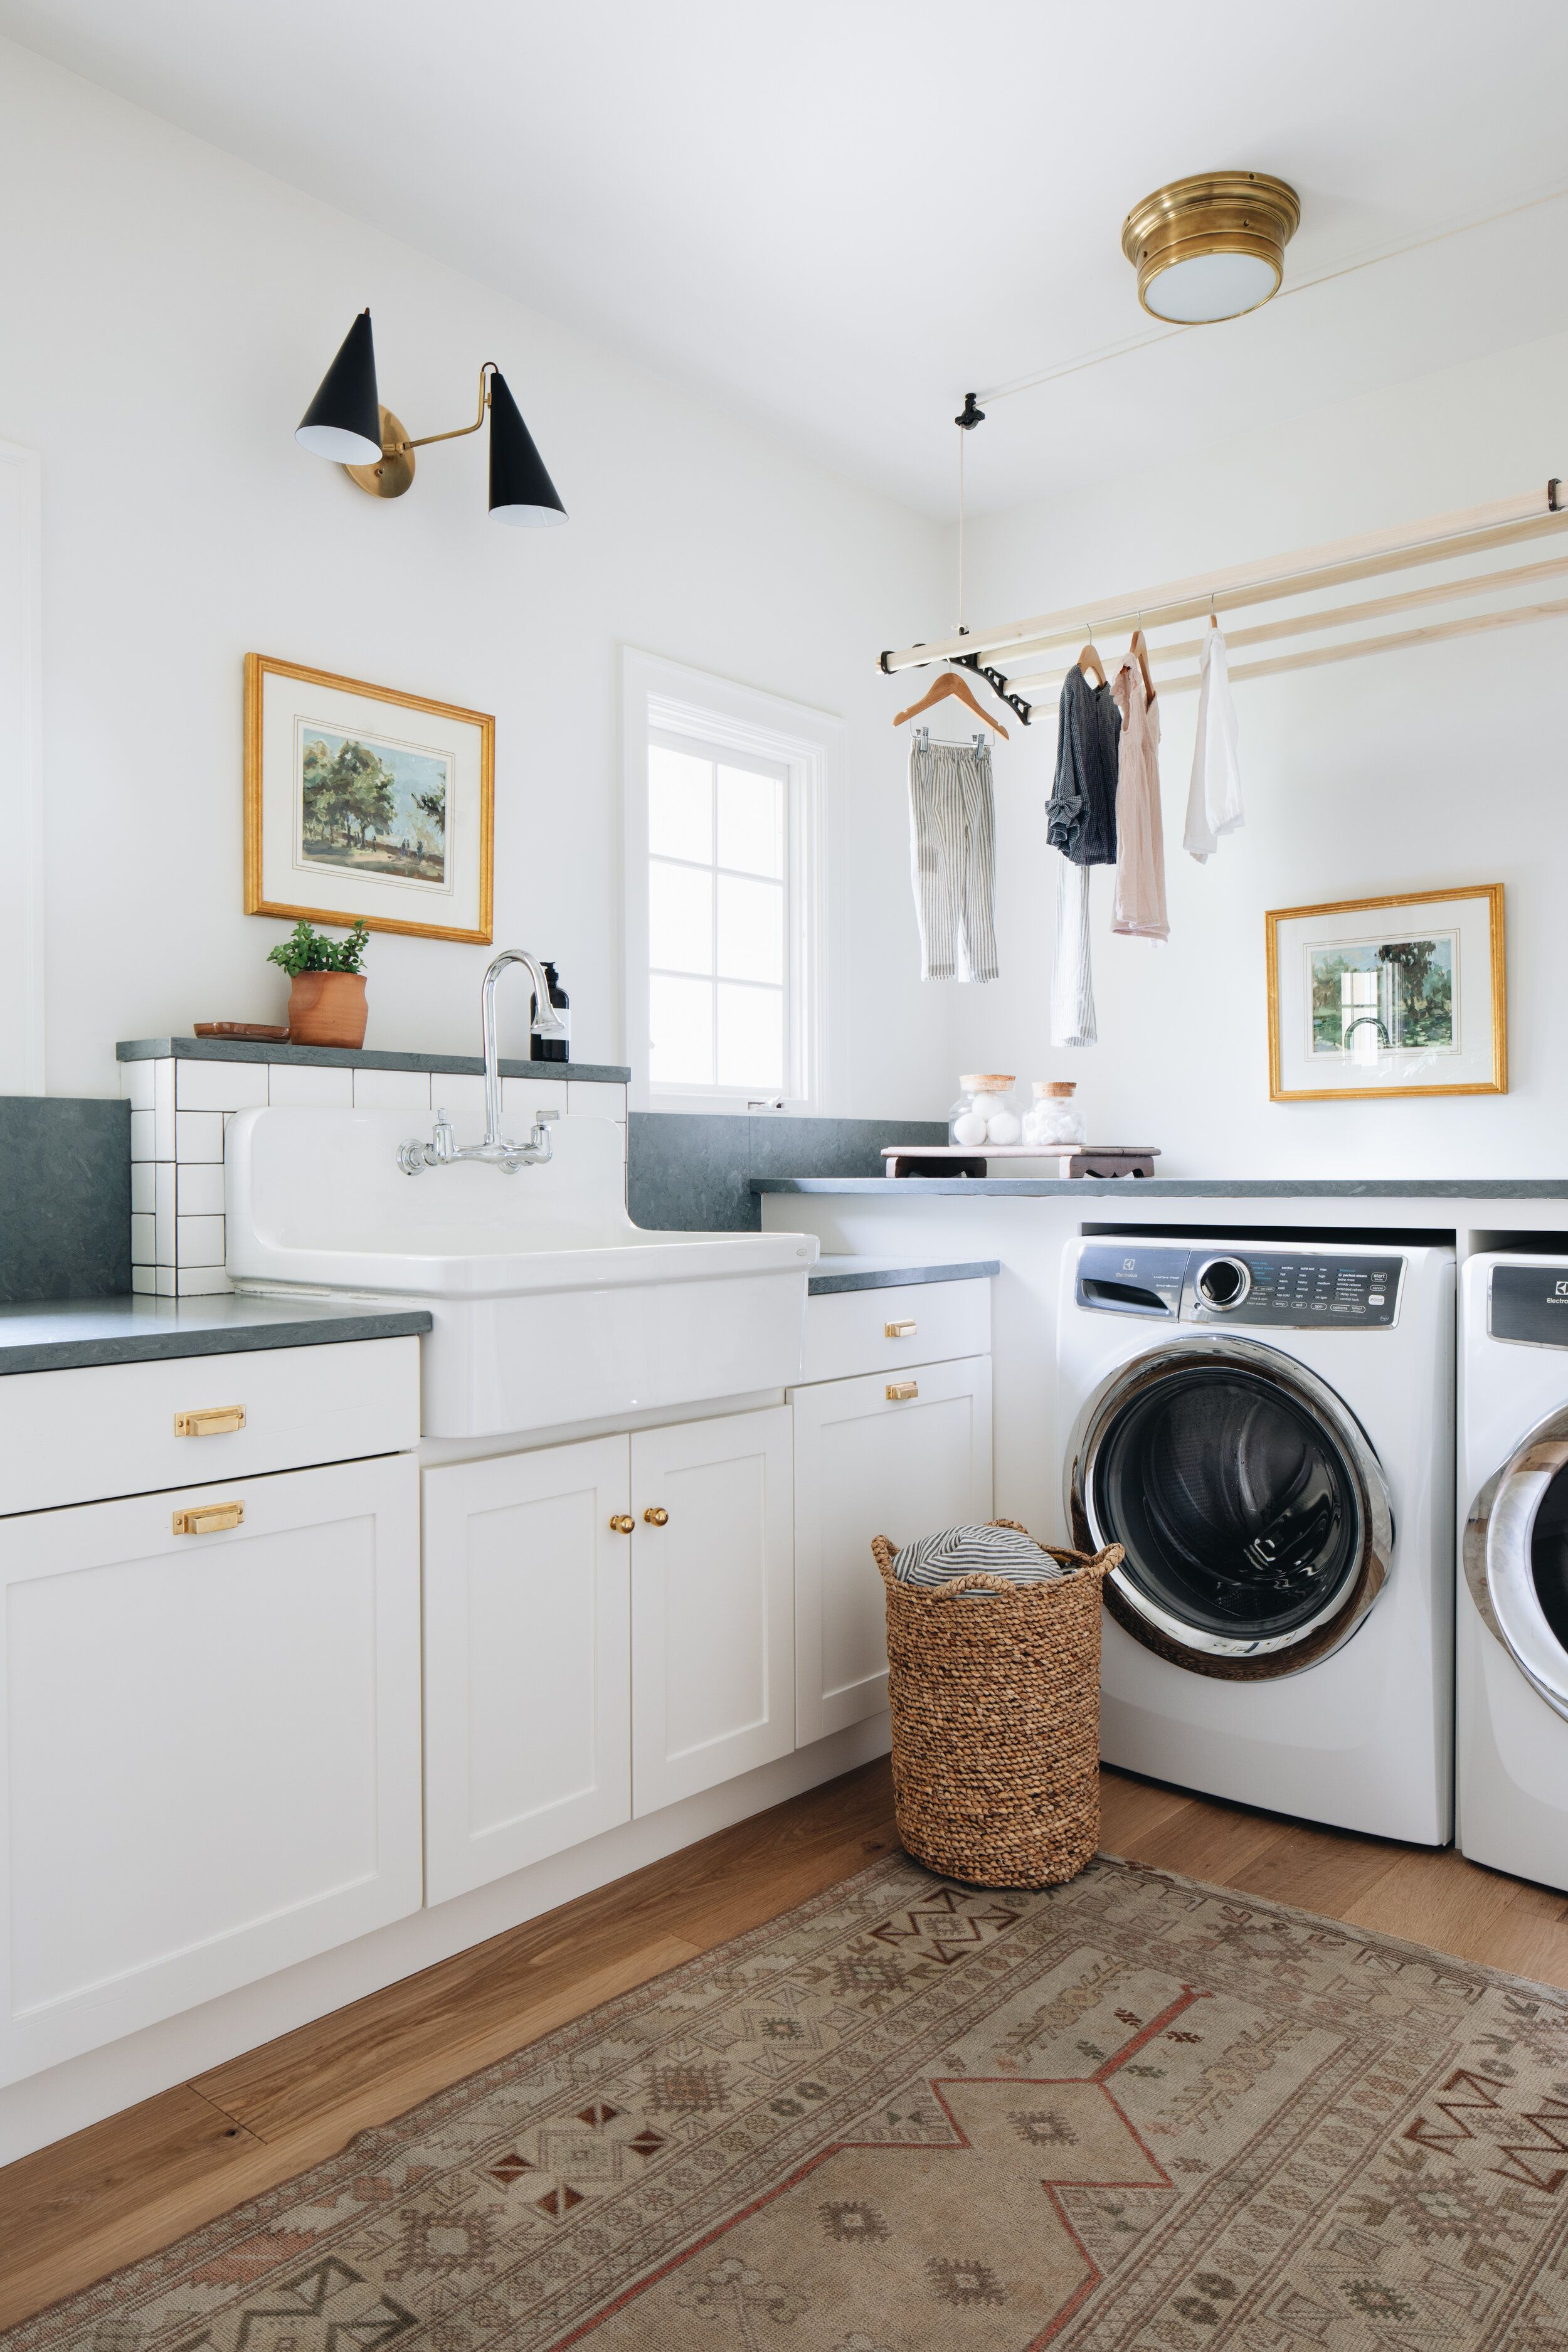 Jsd May 2019 045 Jpg In 2020 Classic Renovation Laundry Room Rugs Laundry Room Design